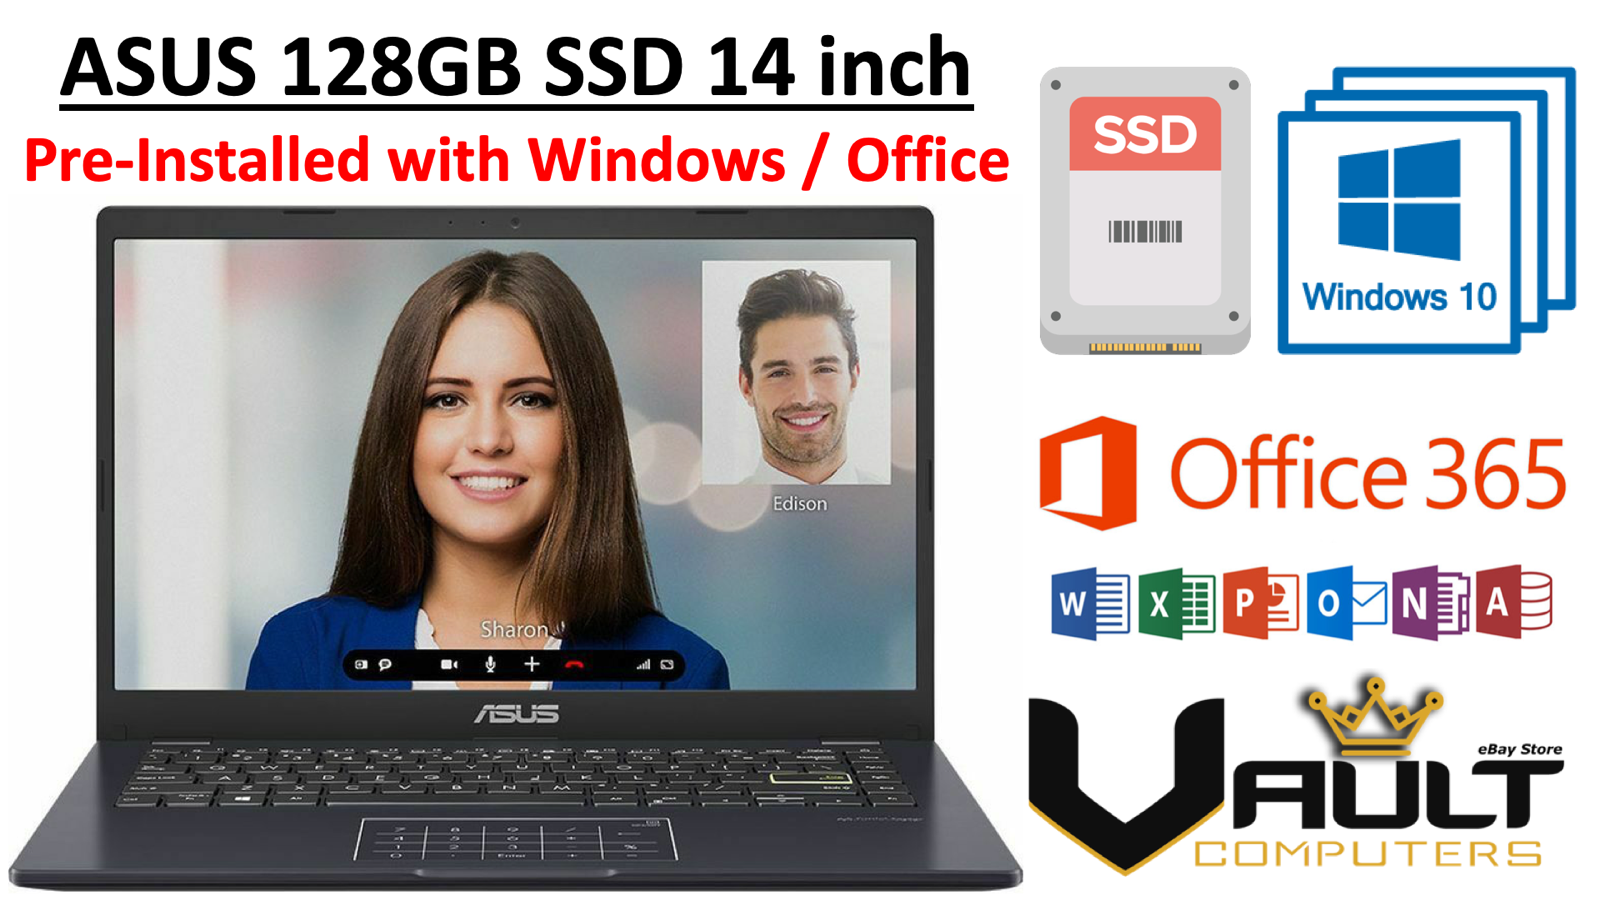 Laptop Windows - Laptop 14in ASUS Laptop New Quick Fast 128GB SSD + 1TB Windows 10 Home & Office